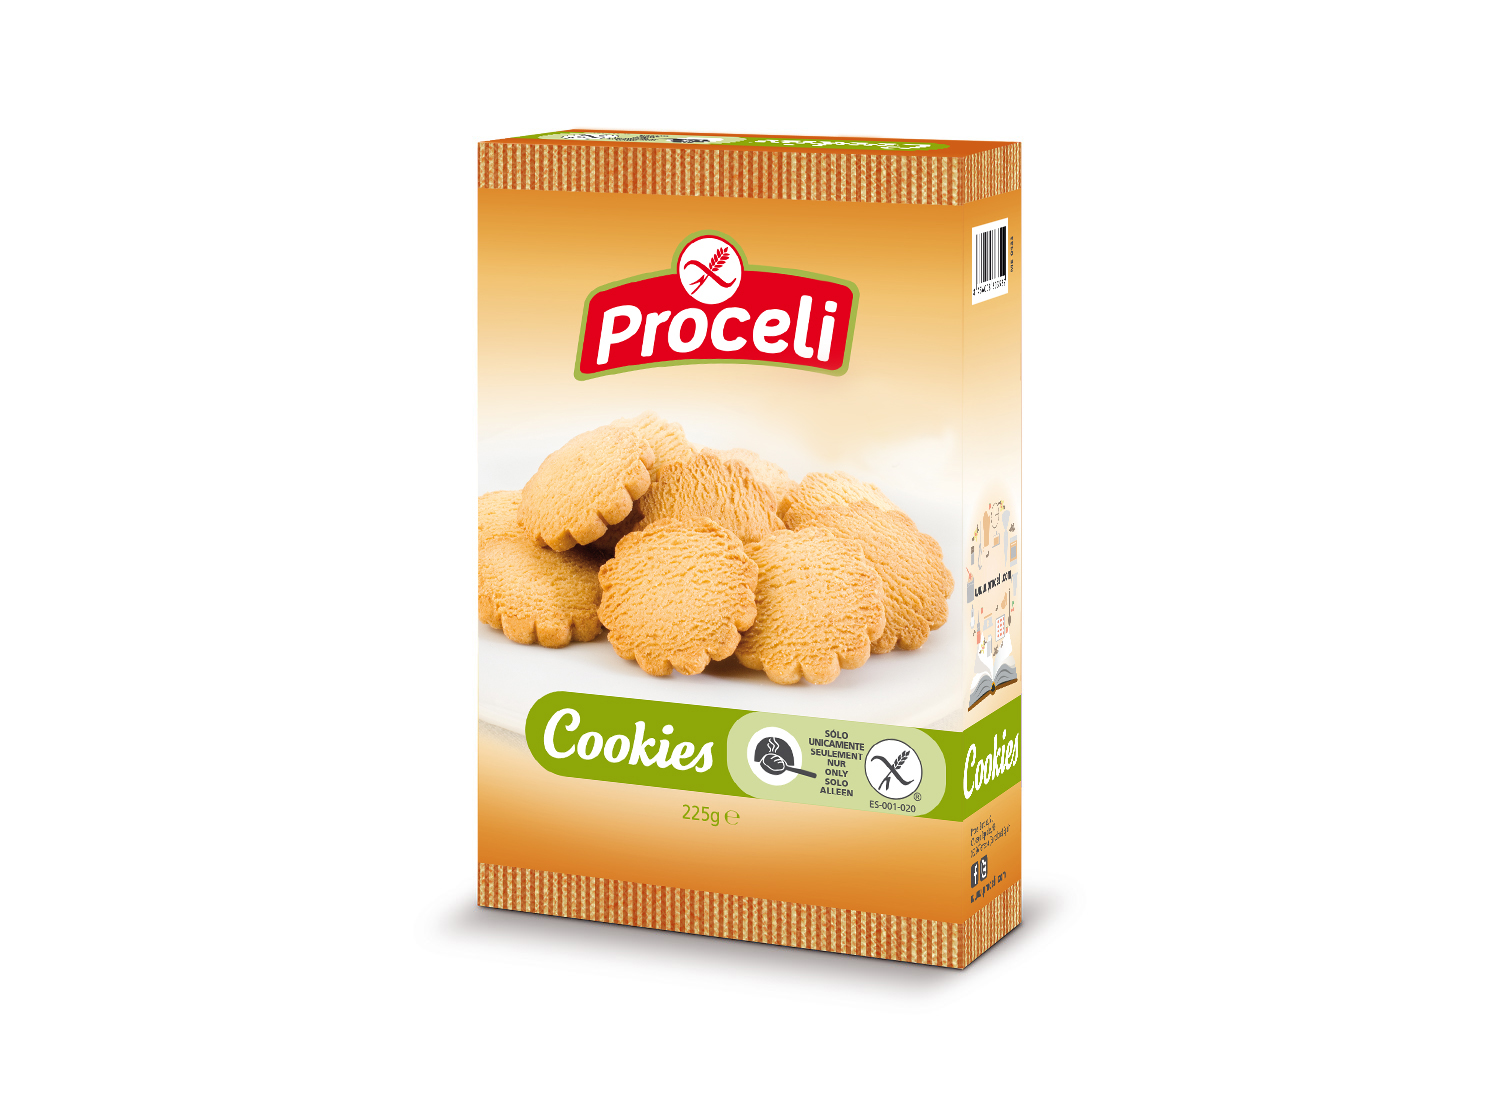 Cookies -gluten-free biscuits from Proceli, with a touch of vanilla